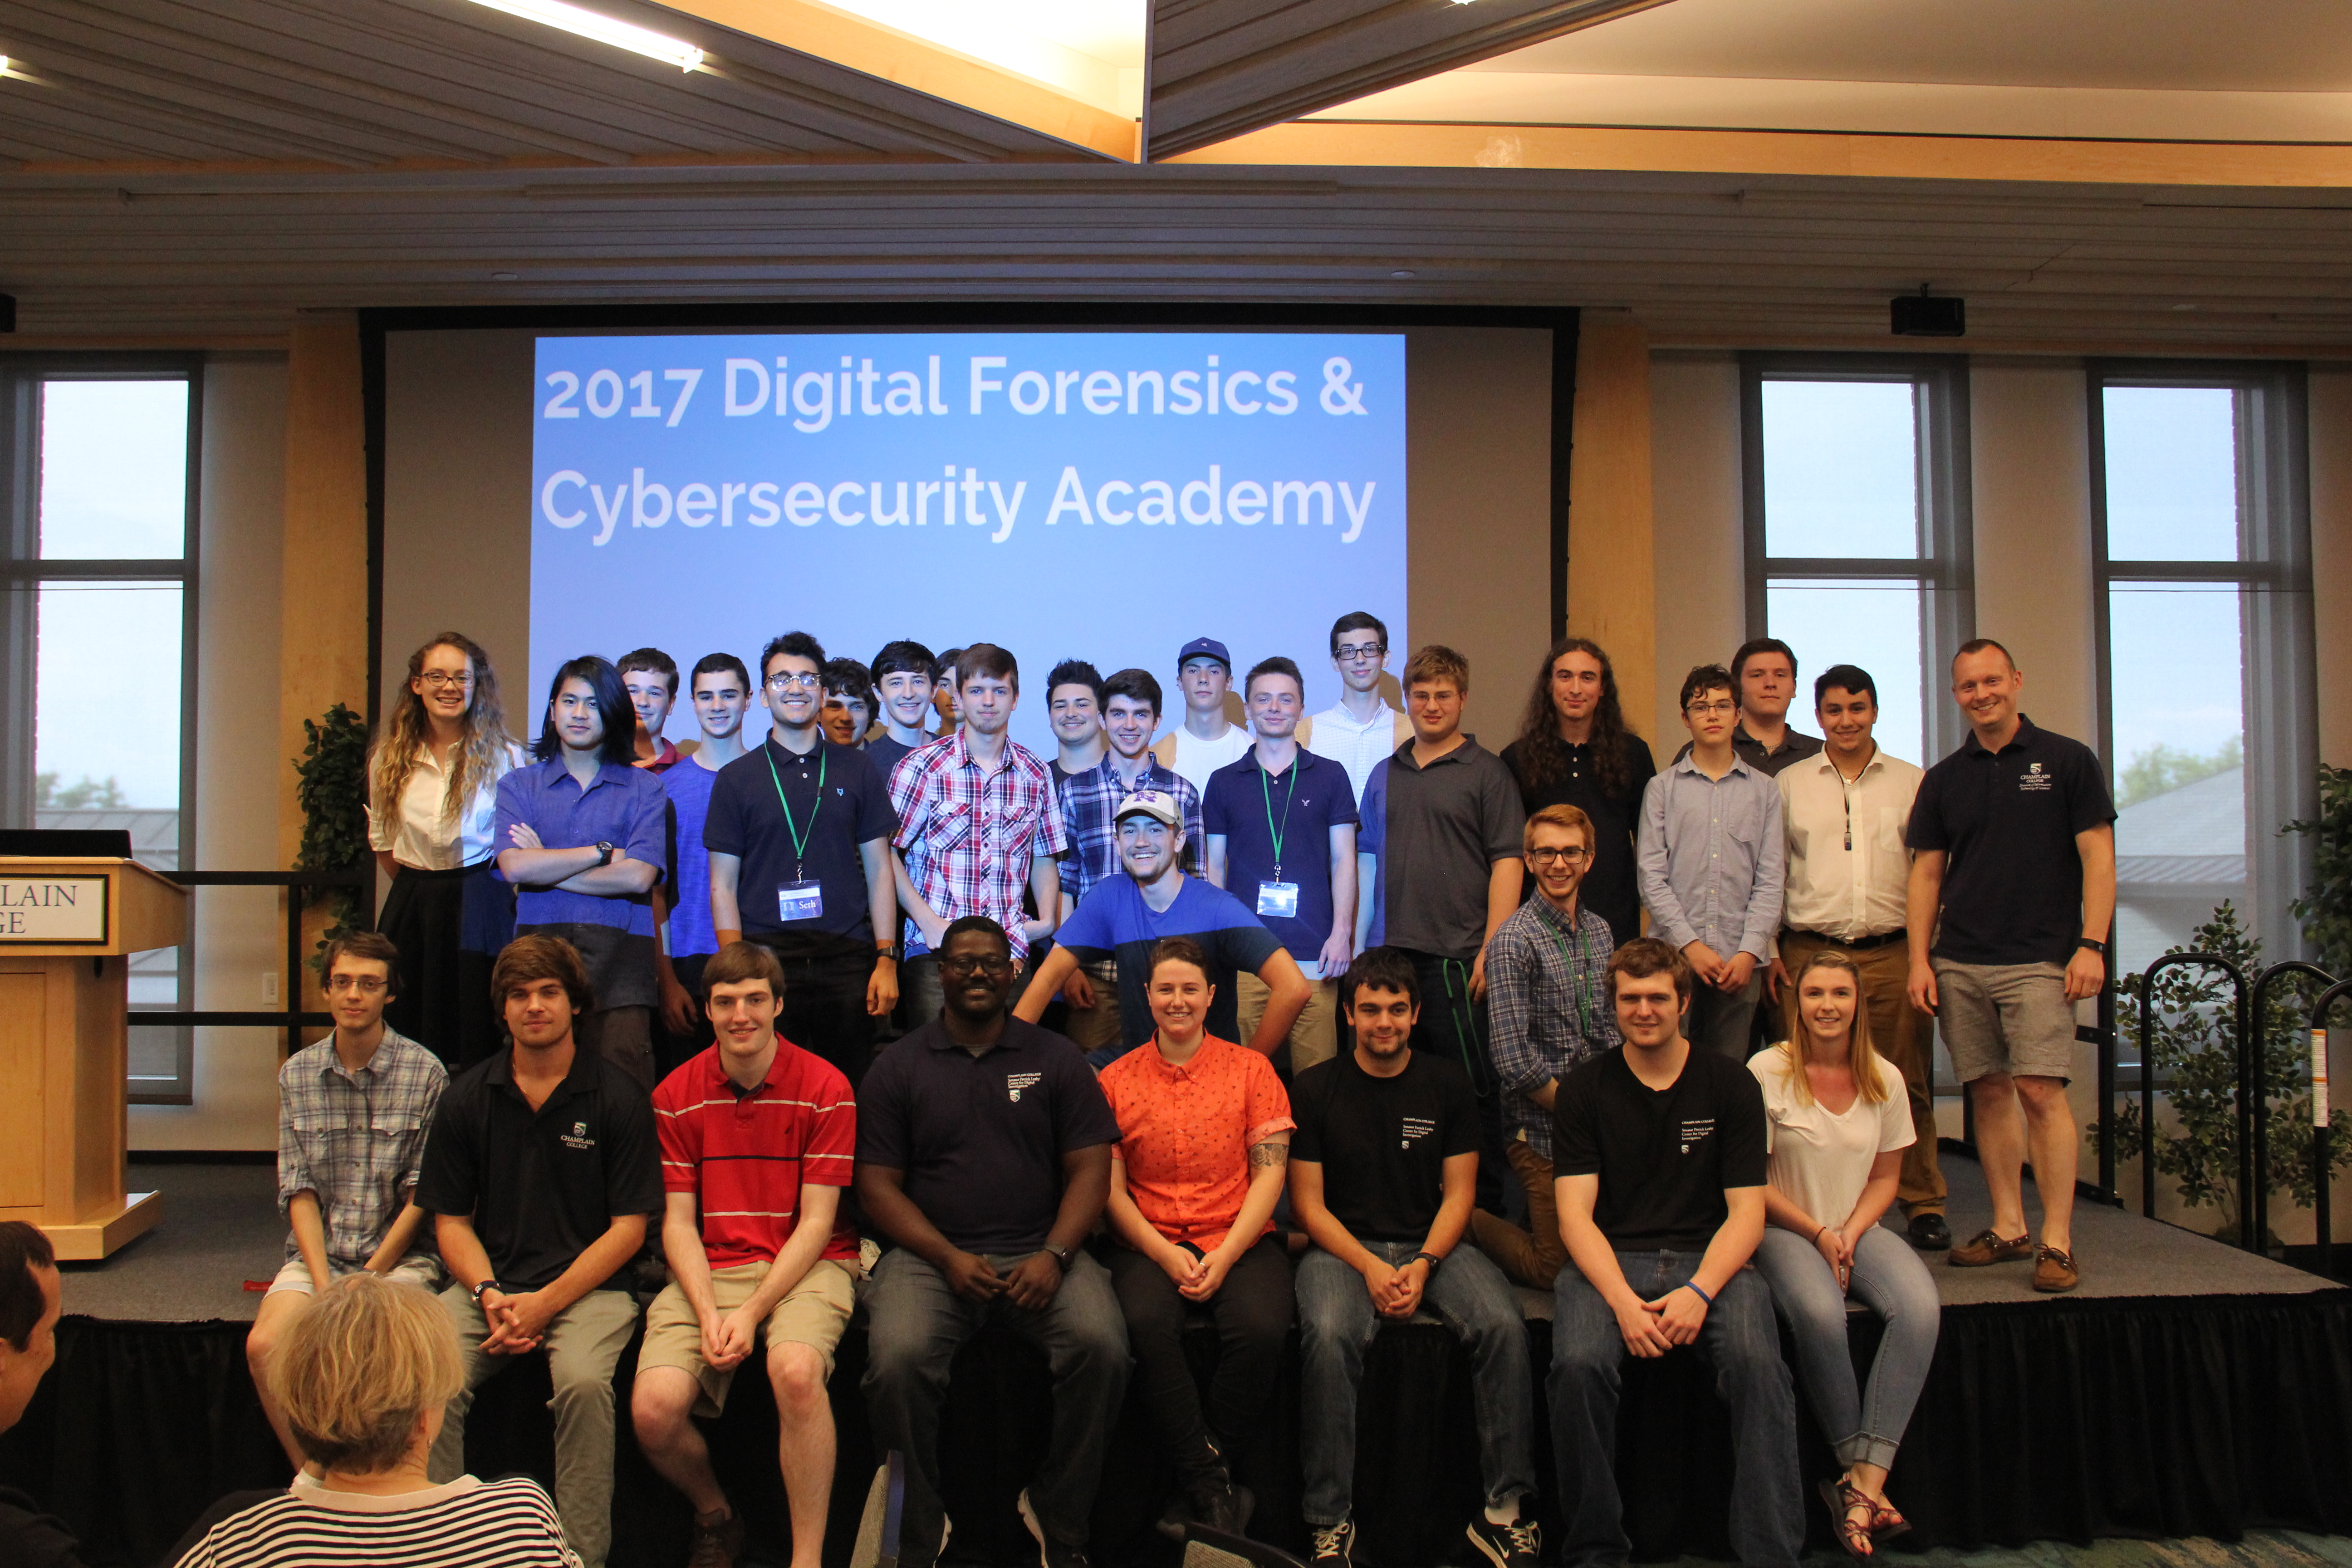 High School students in the Summer Digital Forensics & Cybersecurity Academy